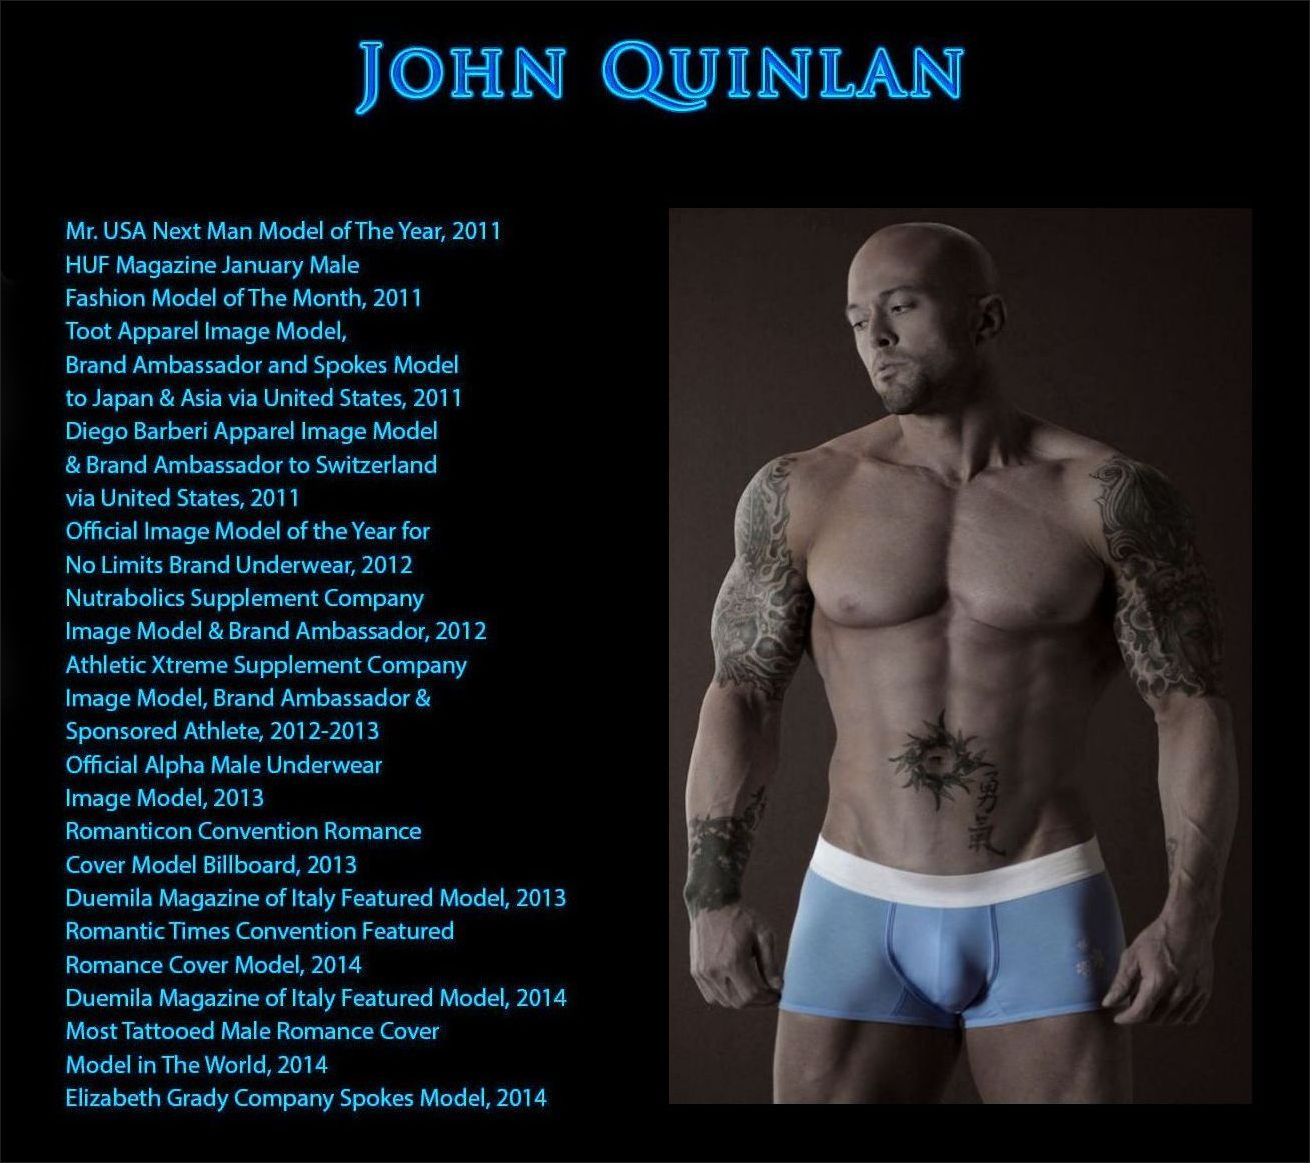 Celebrity Romance Cover Model & Actor John Joseph Quinlan #JohnQuinlan